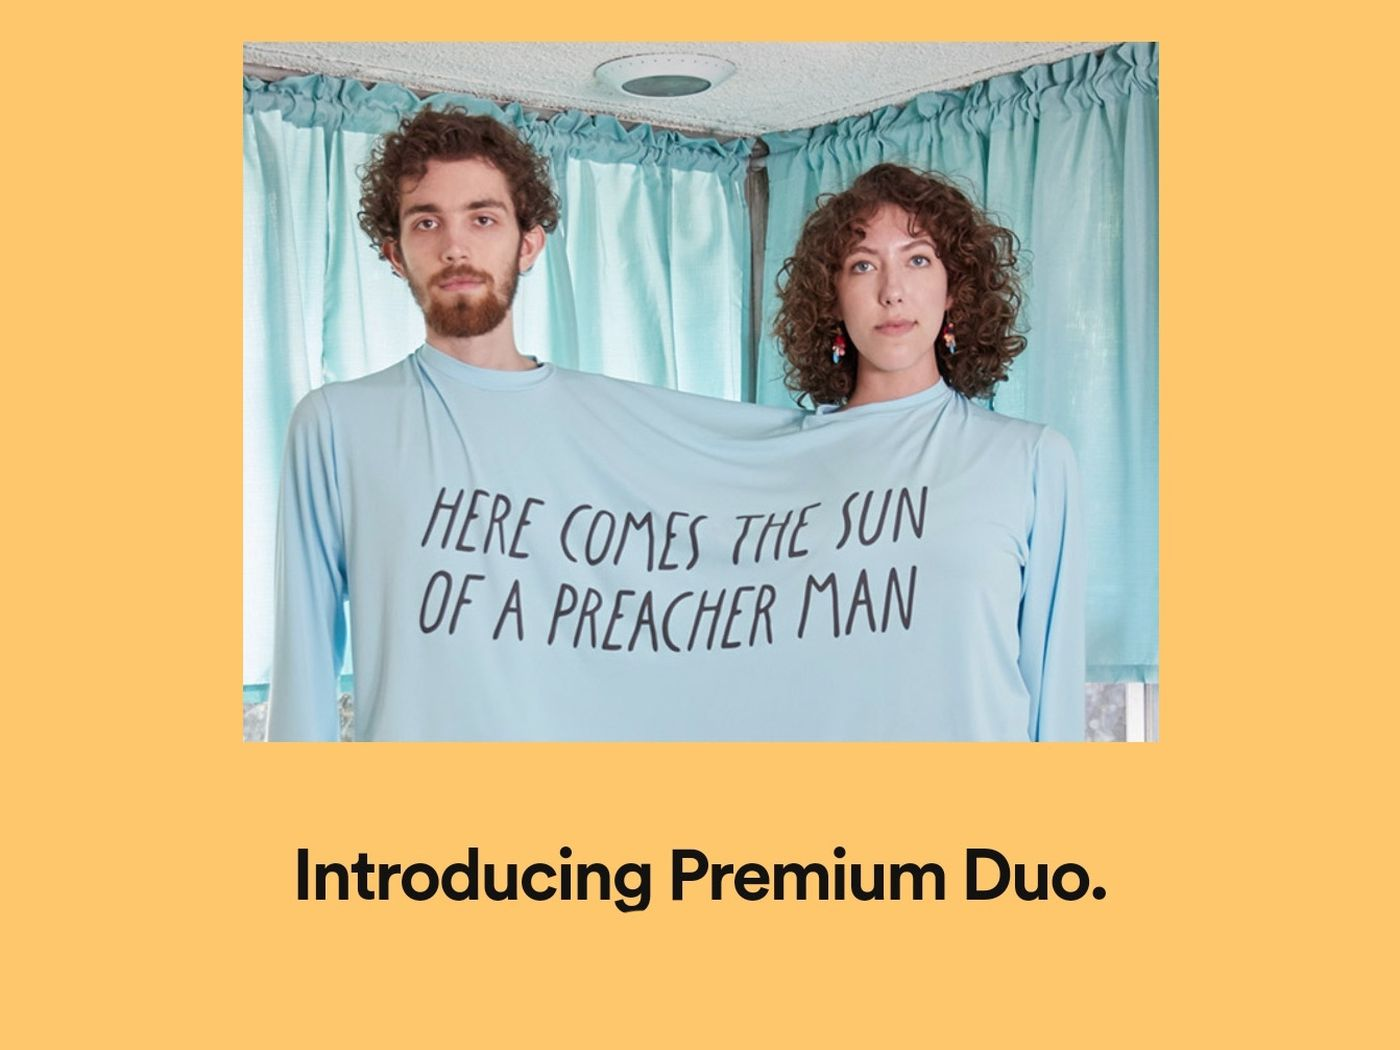 Spotify is testing Premium Duo, a discounted subscription for two